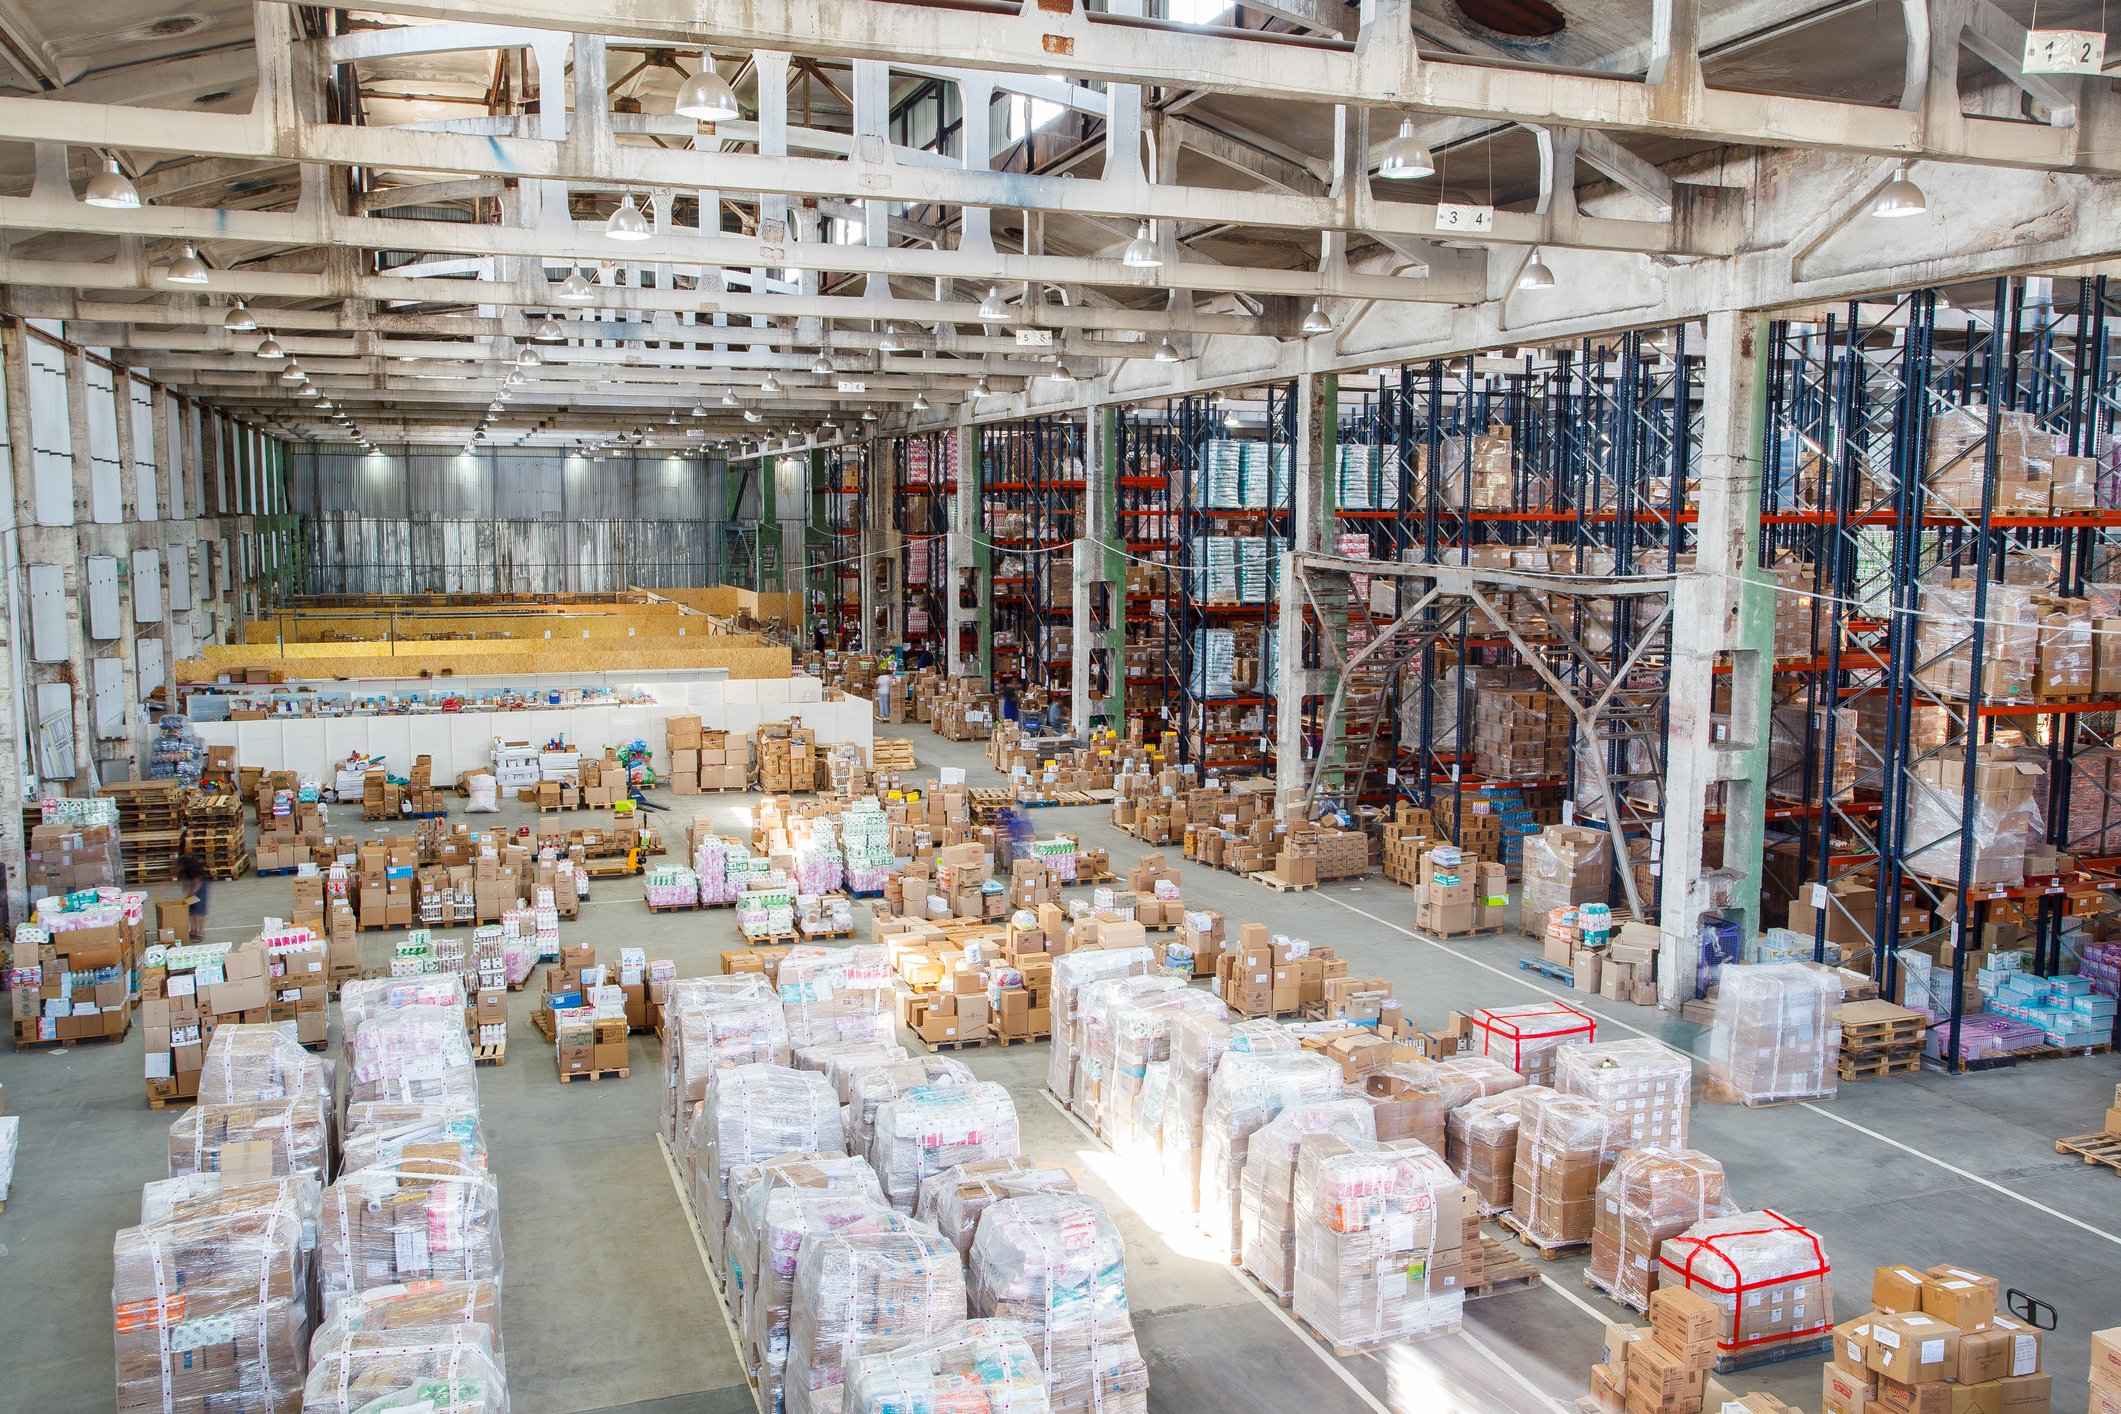 Product Warehousing - Have your product(s) delivered directly to our warehouse facility. When we receive your inventory in our distribution center, we will verify that the shipment is accurate, inspect your goods for damage and stock the items for future shipping.